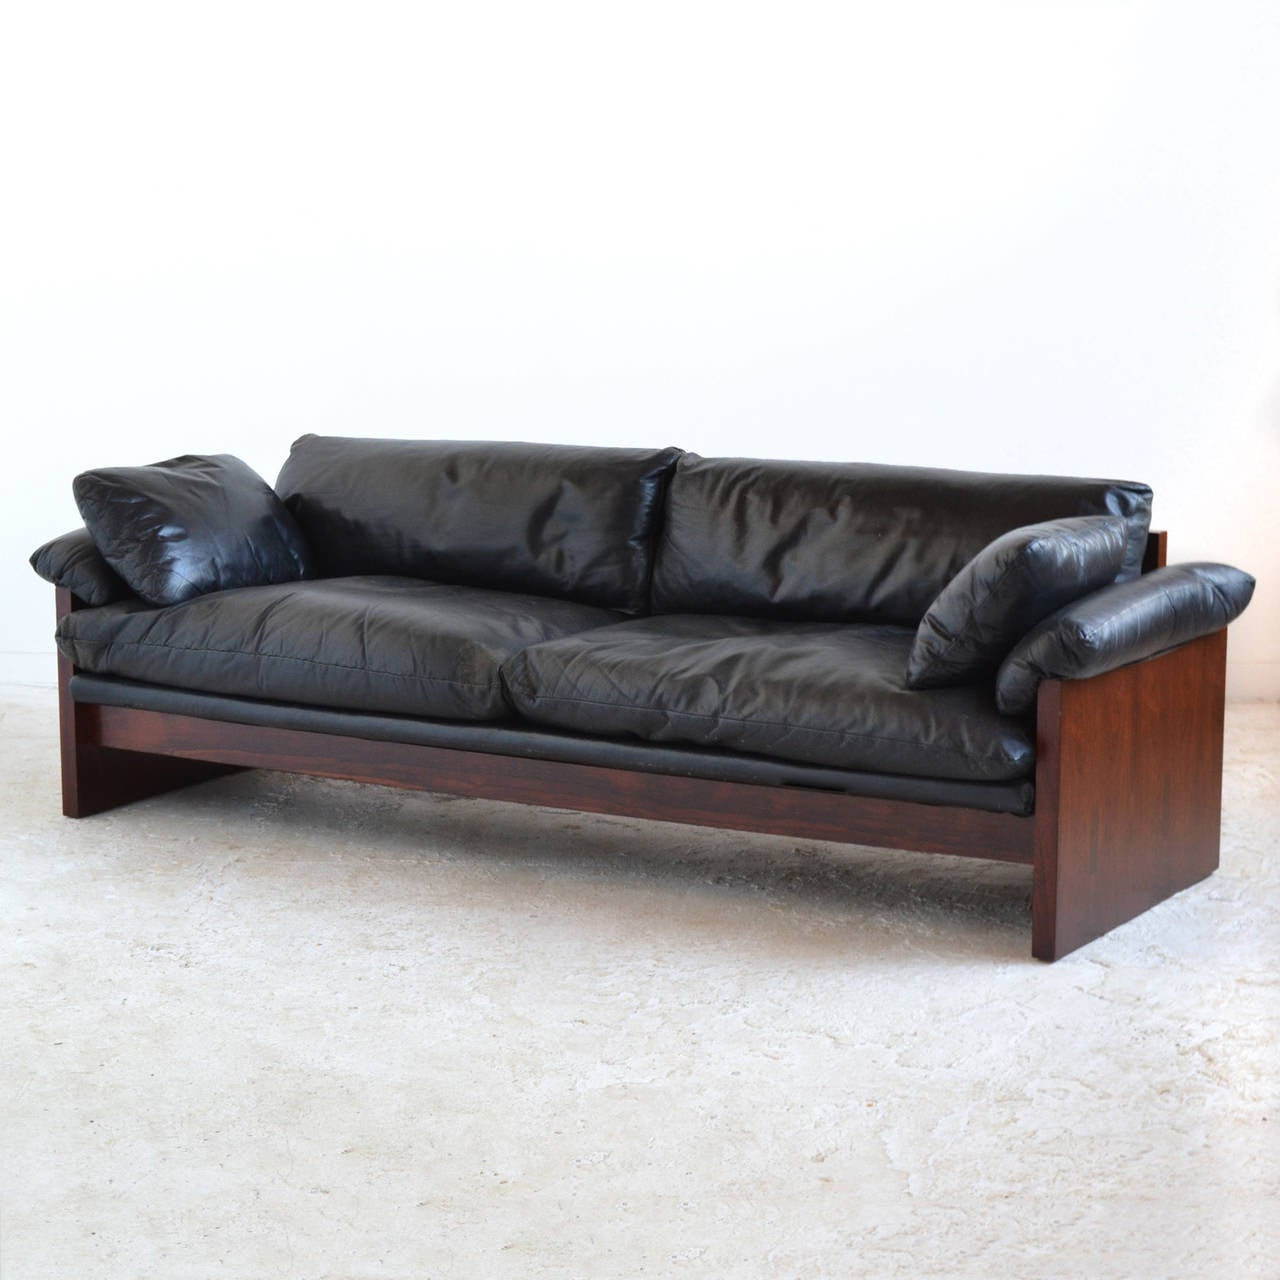 down filled leather sectional sofa la z boy reclining reviews rosewood with cushions at 1stdibs